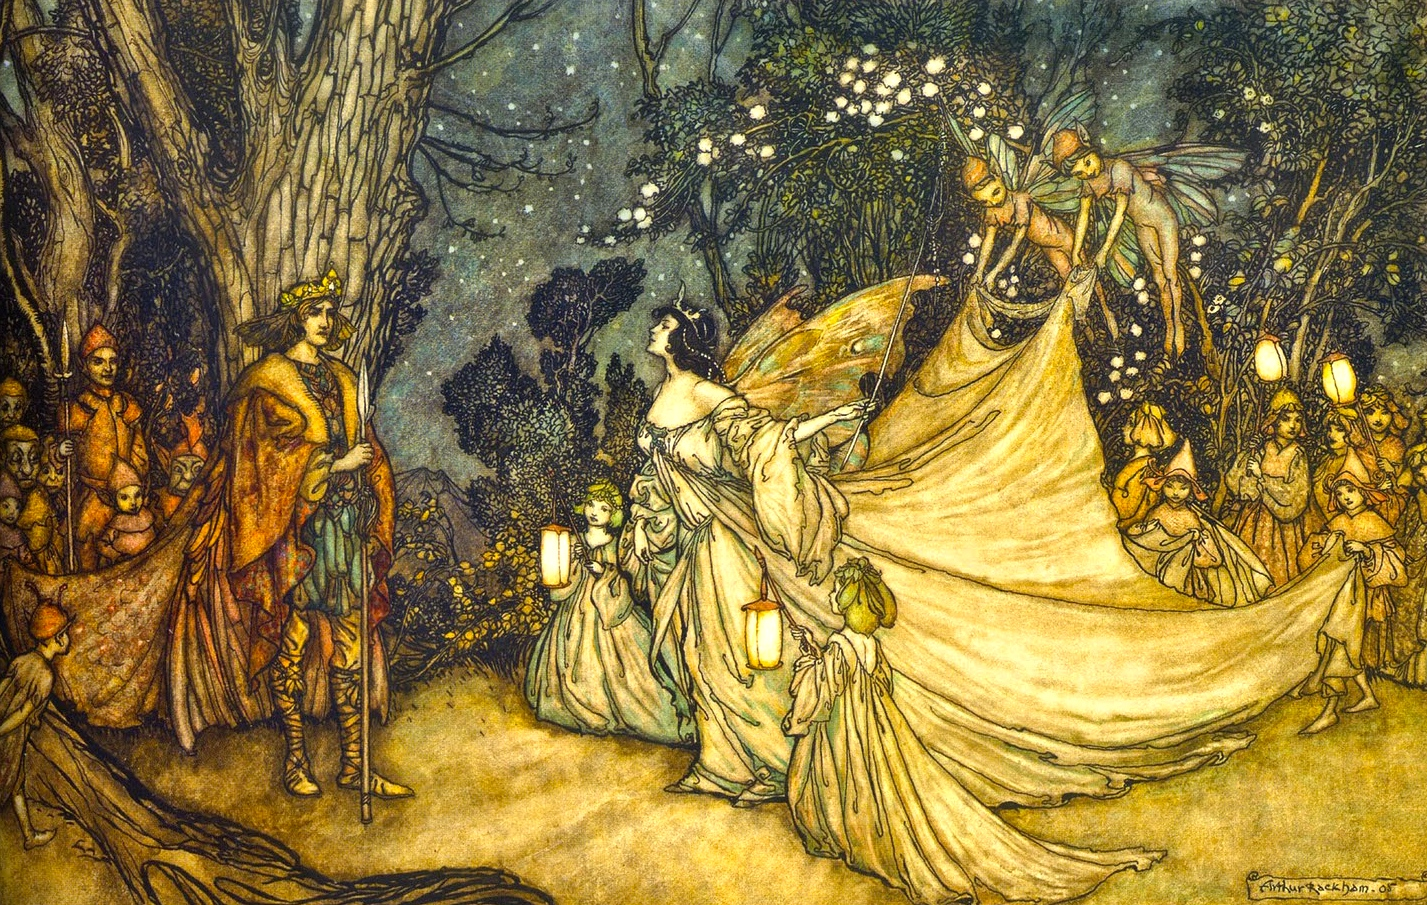 a mid summers night dream Need help with act 2, scene 2 in william shakespeare's a midsummer night's dream check out our revolutionary side-by-side summary and analysis.